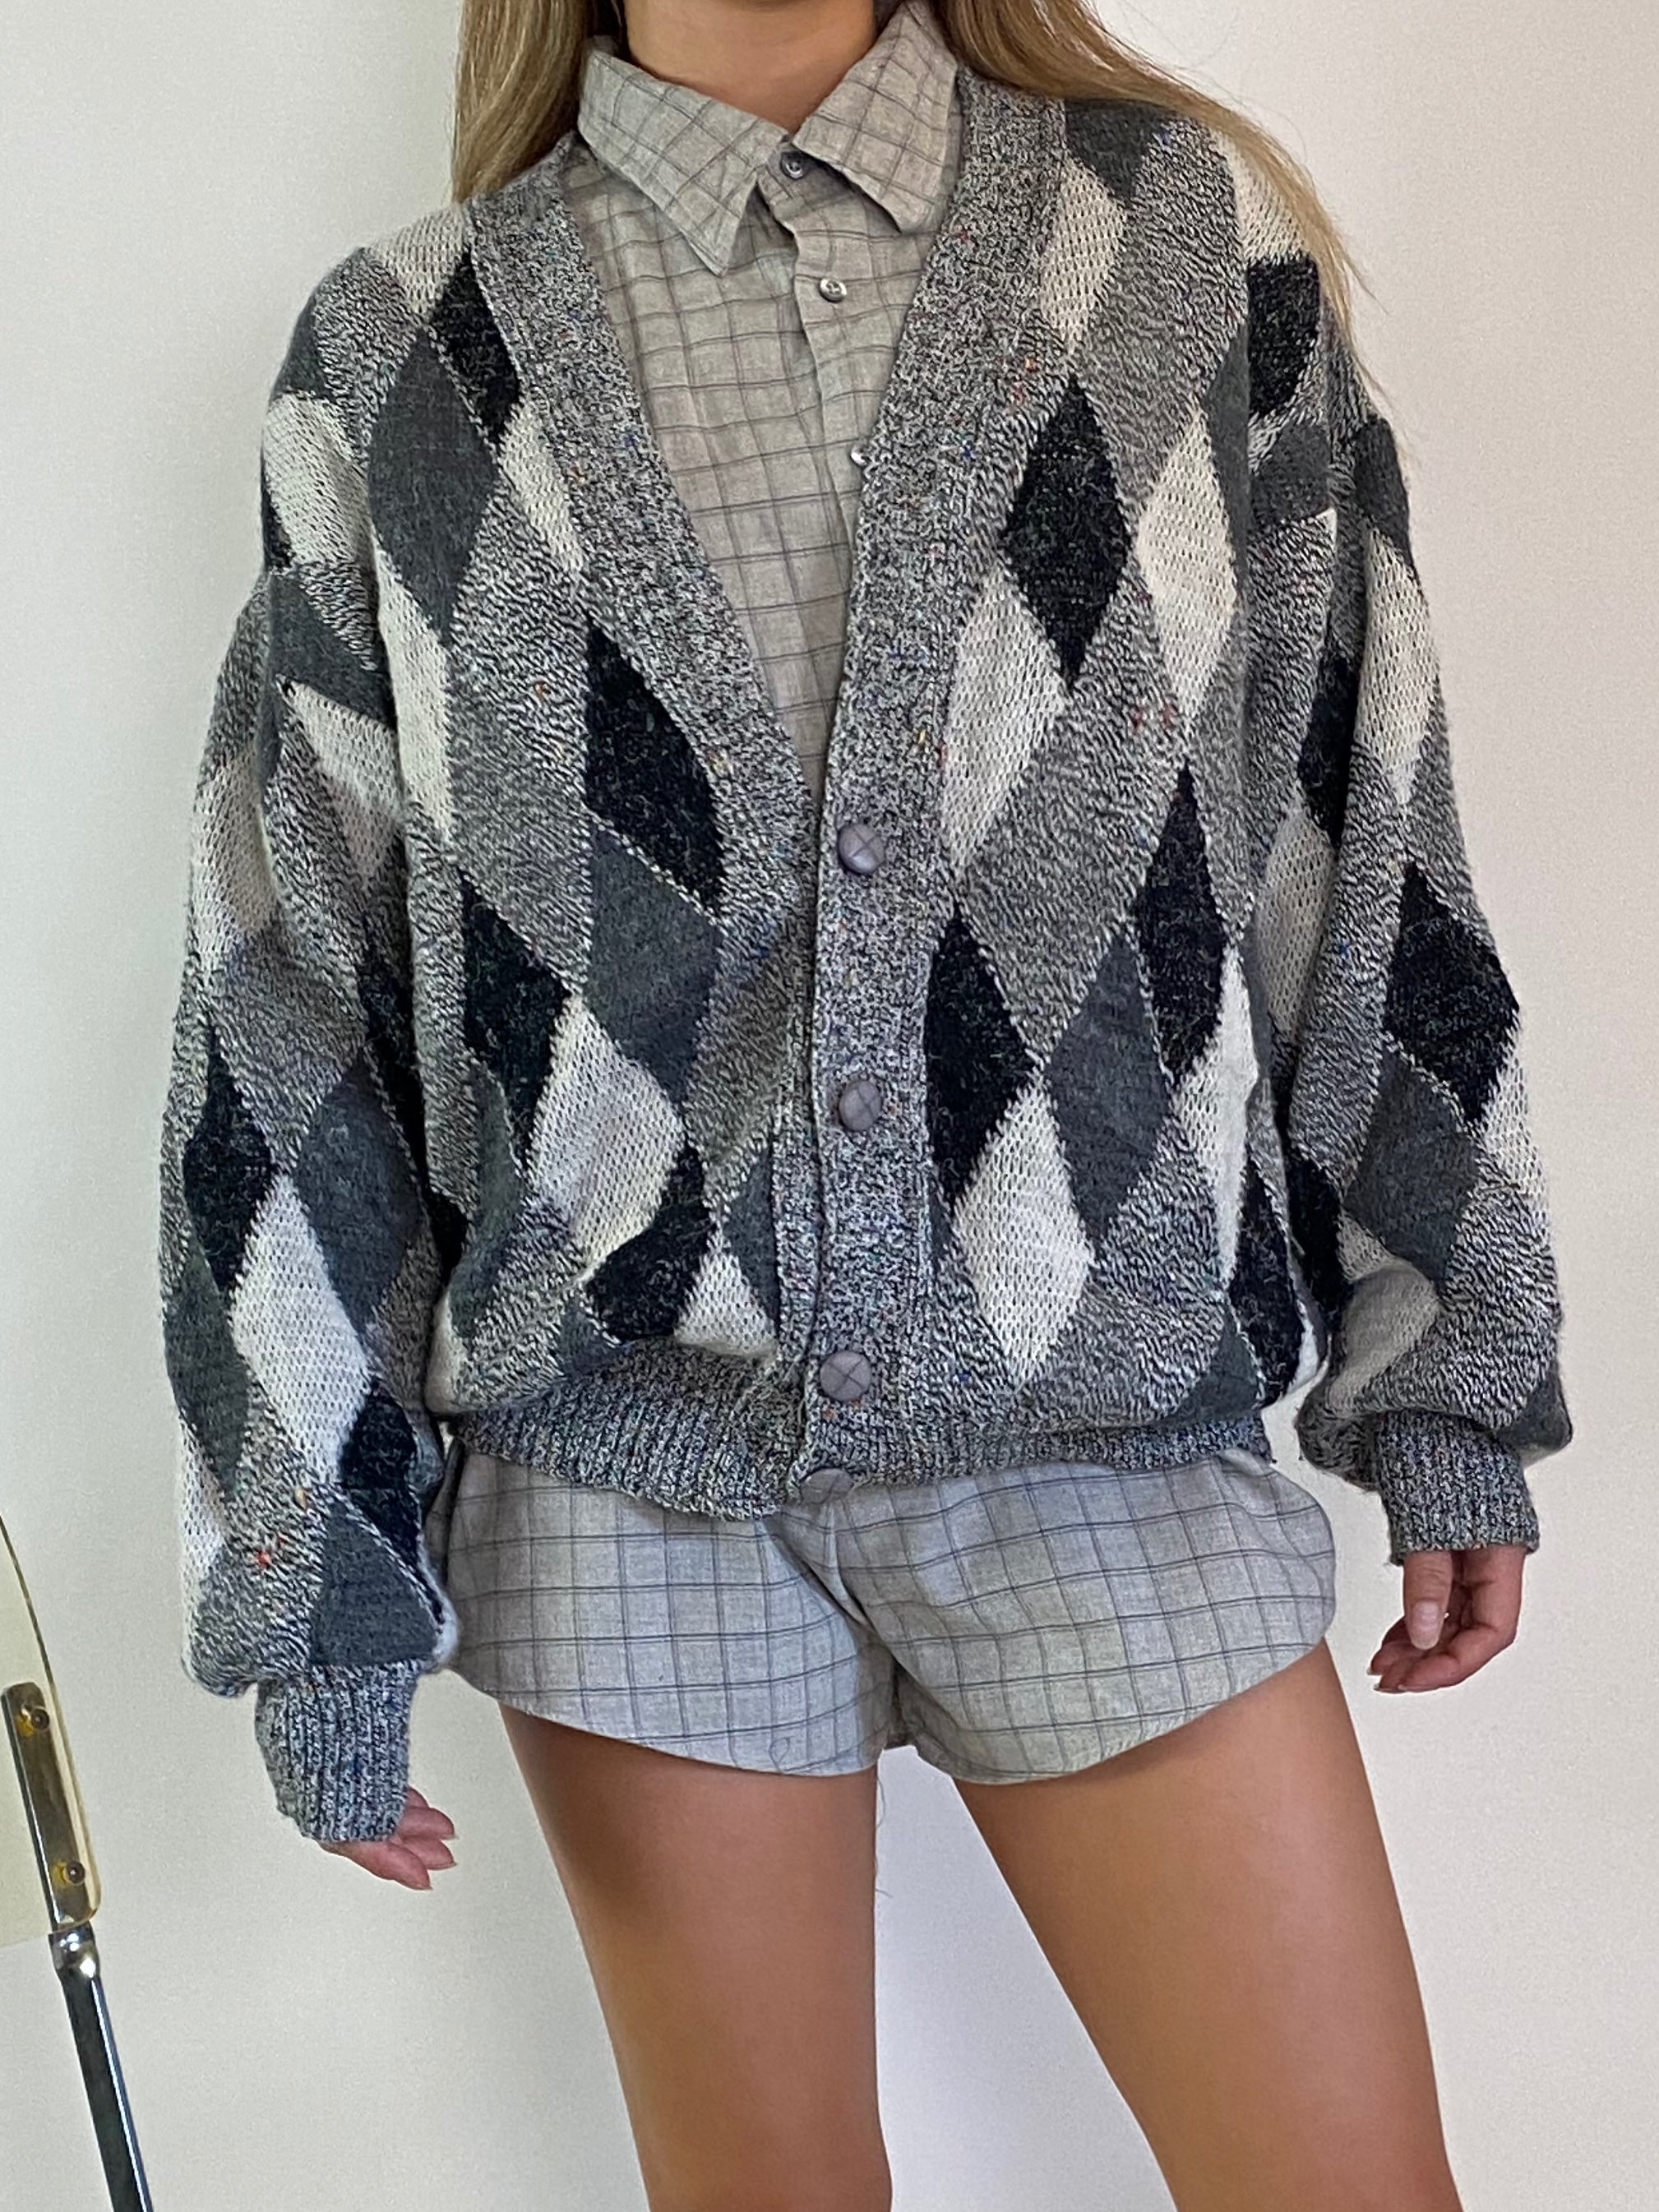 Vintage knitted cardigan sweater